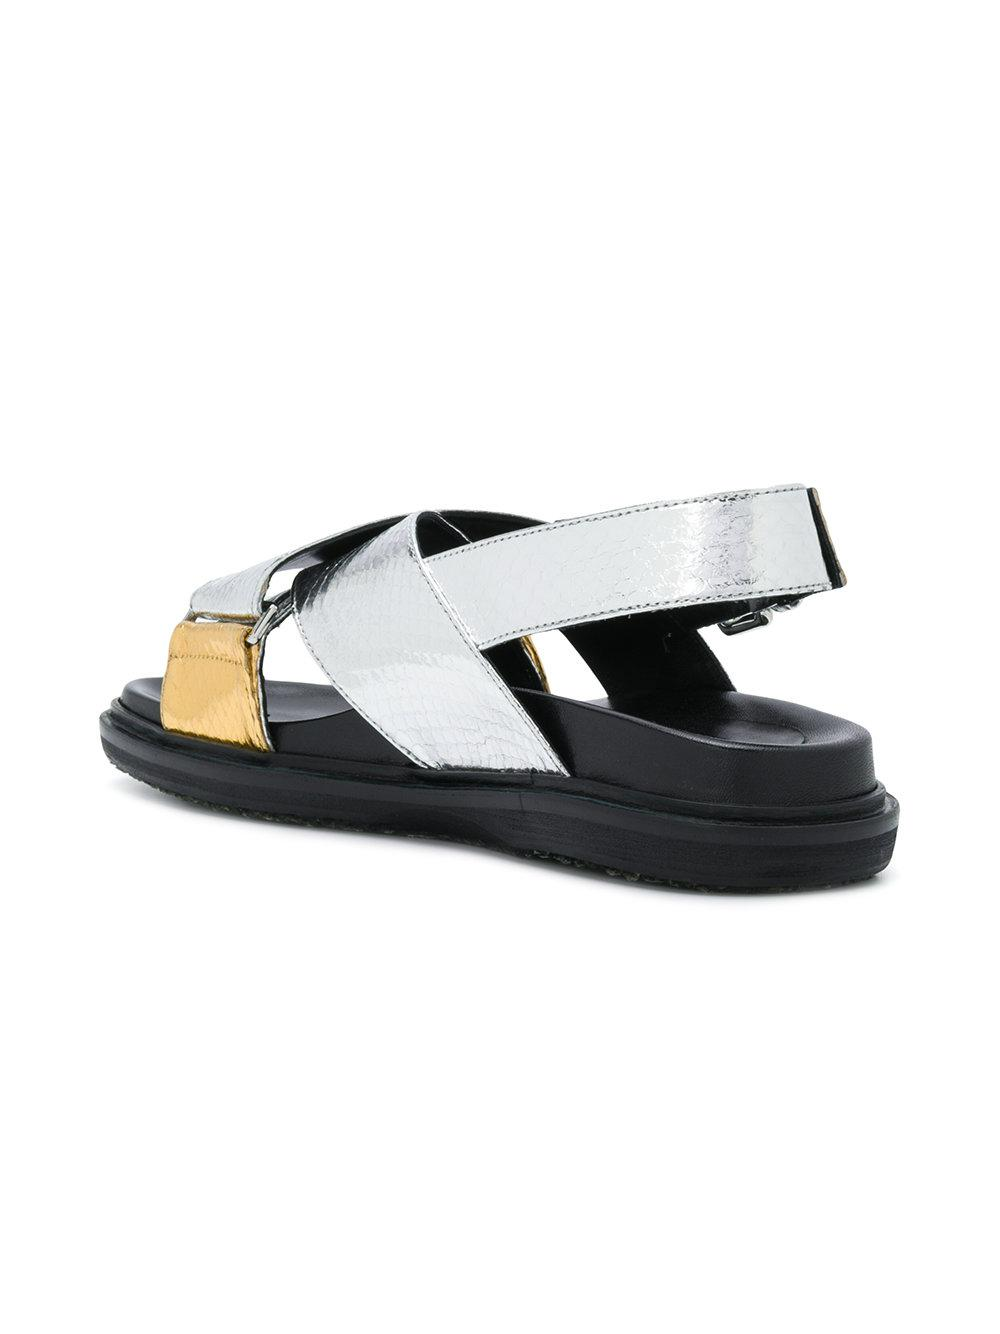 cross over strap sandals - Metallic Marni Clearance Store Cheap Price Shop 2018 Cheap Price Latest Collections For Sale dj7s4